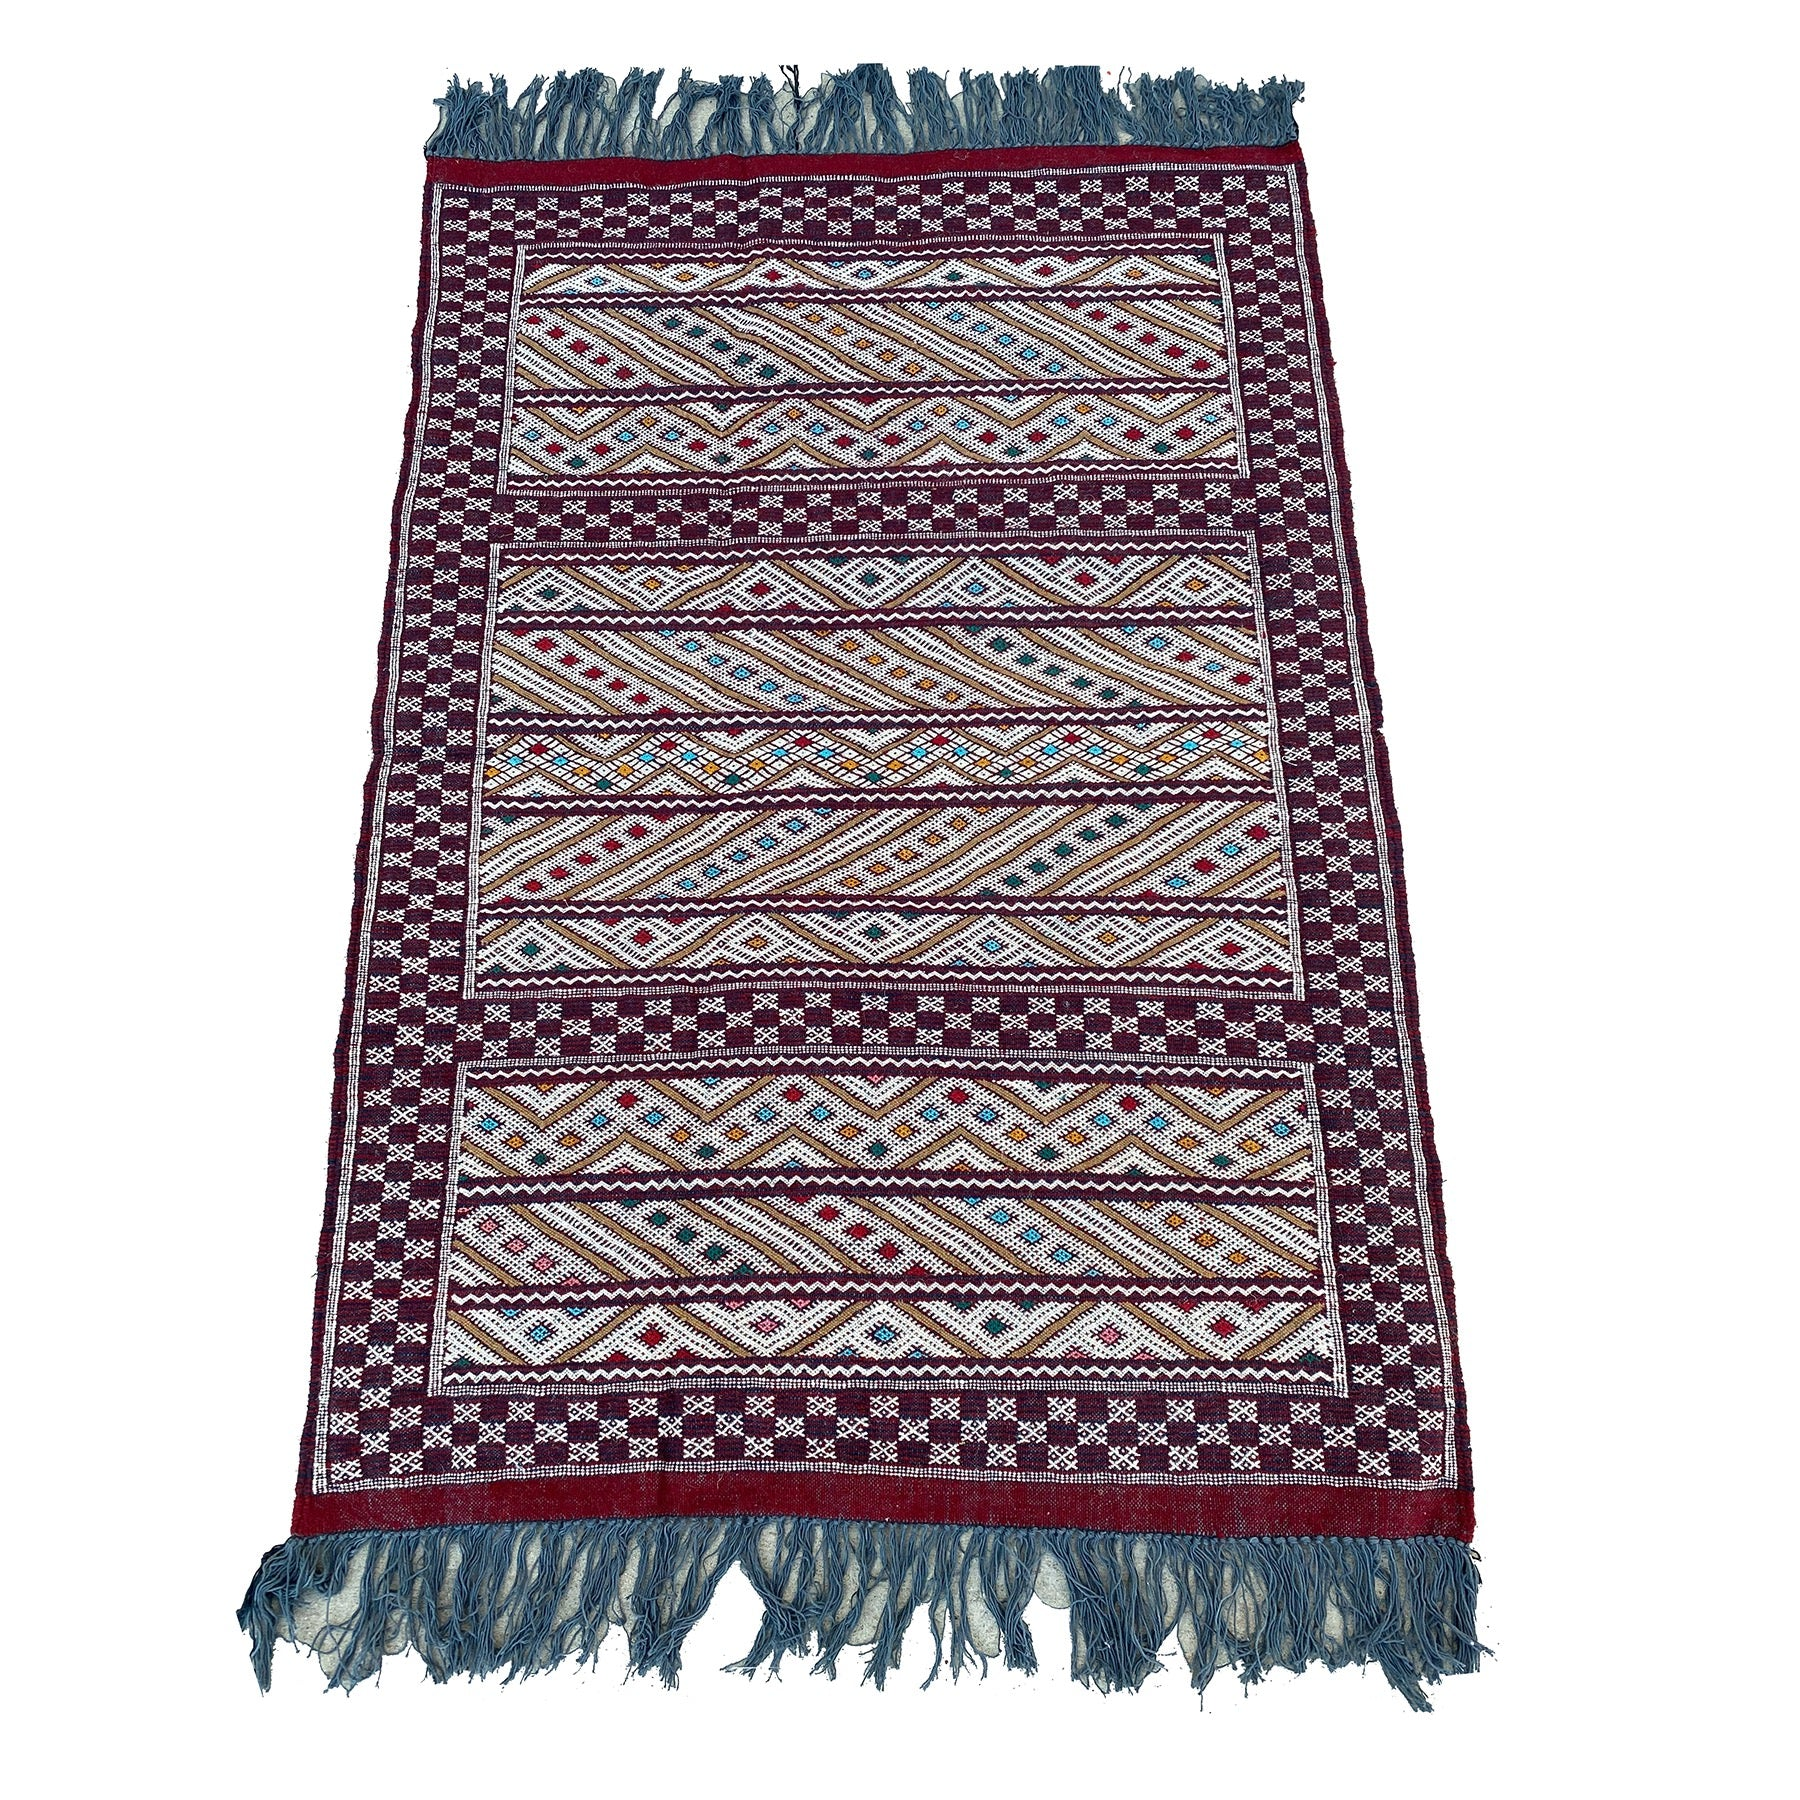 Maroon Moroccan flatweave kilim with colorful details - Kantara | Moroccan Rugs